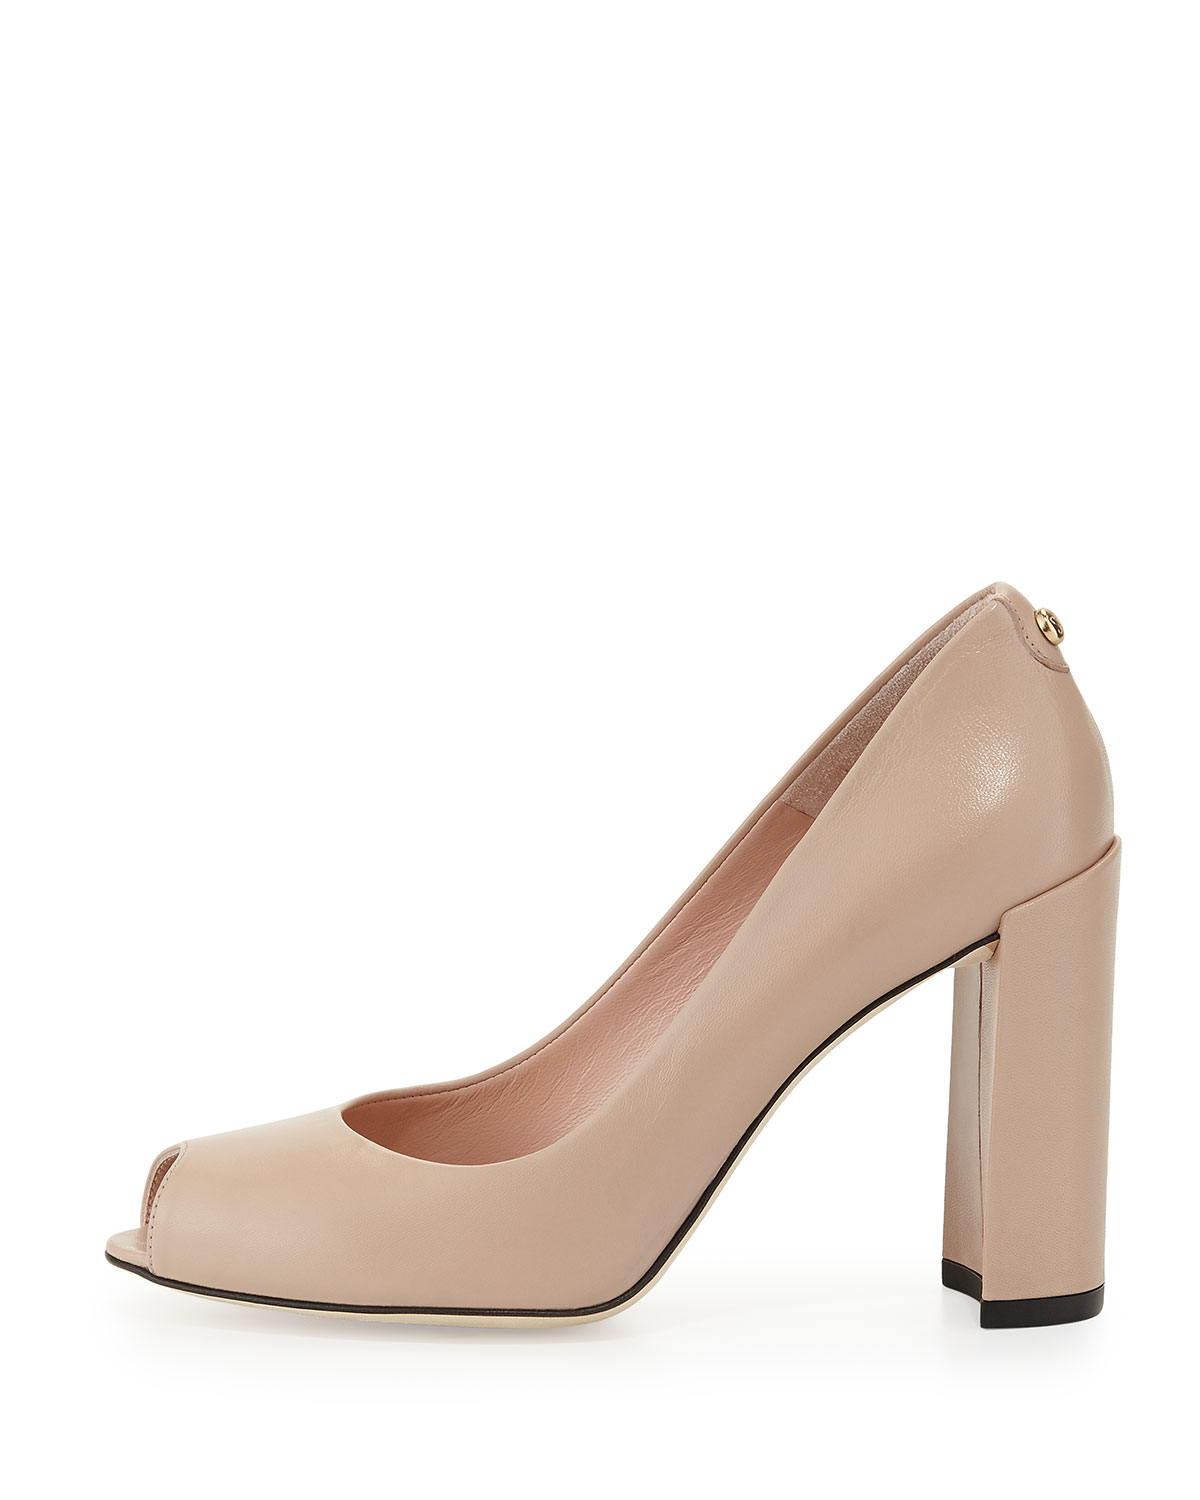 Stuart Weitzman Buttoni Cap-Toe Pumps